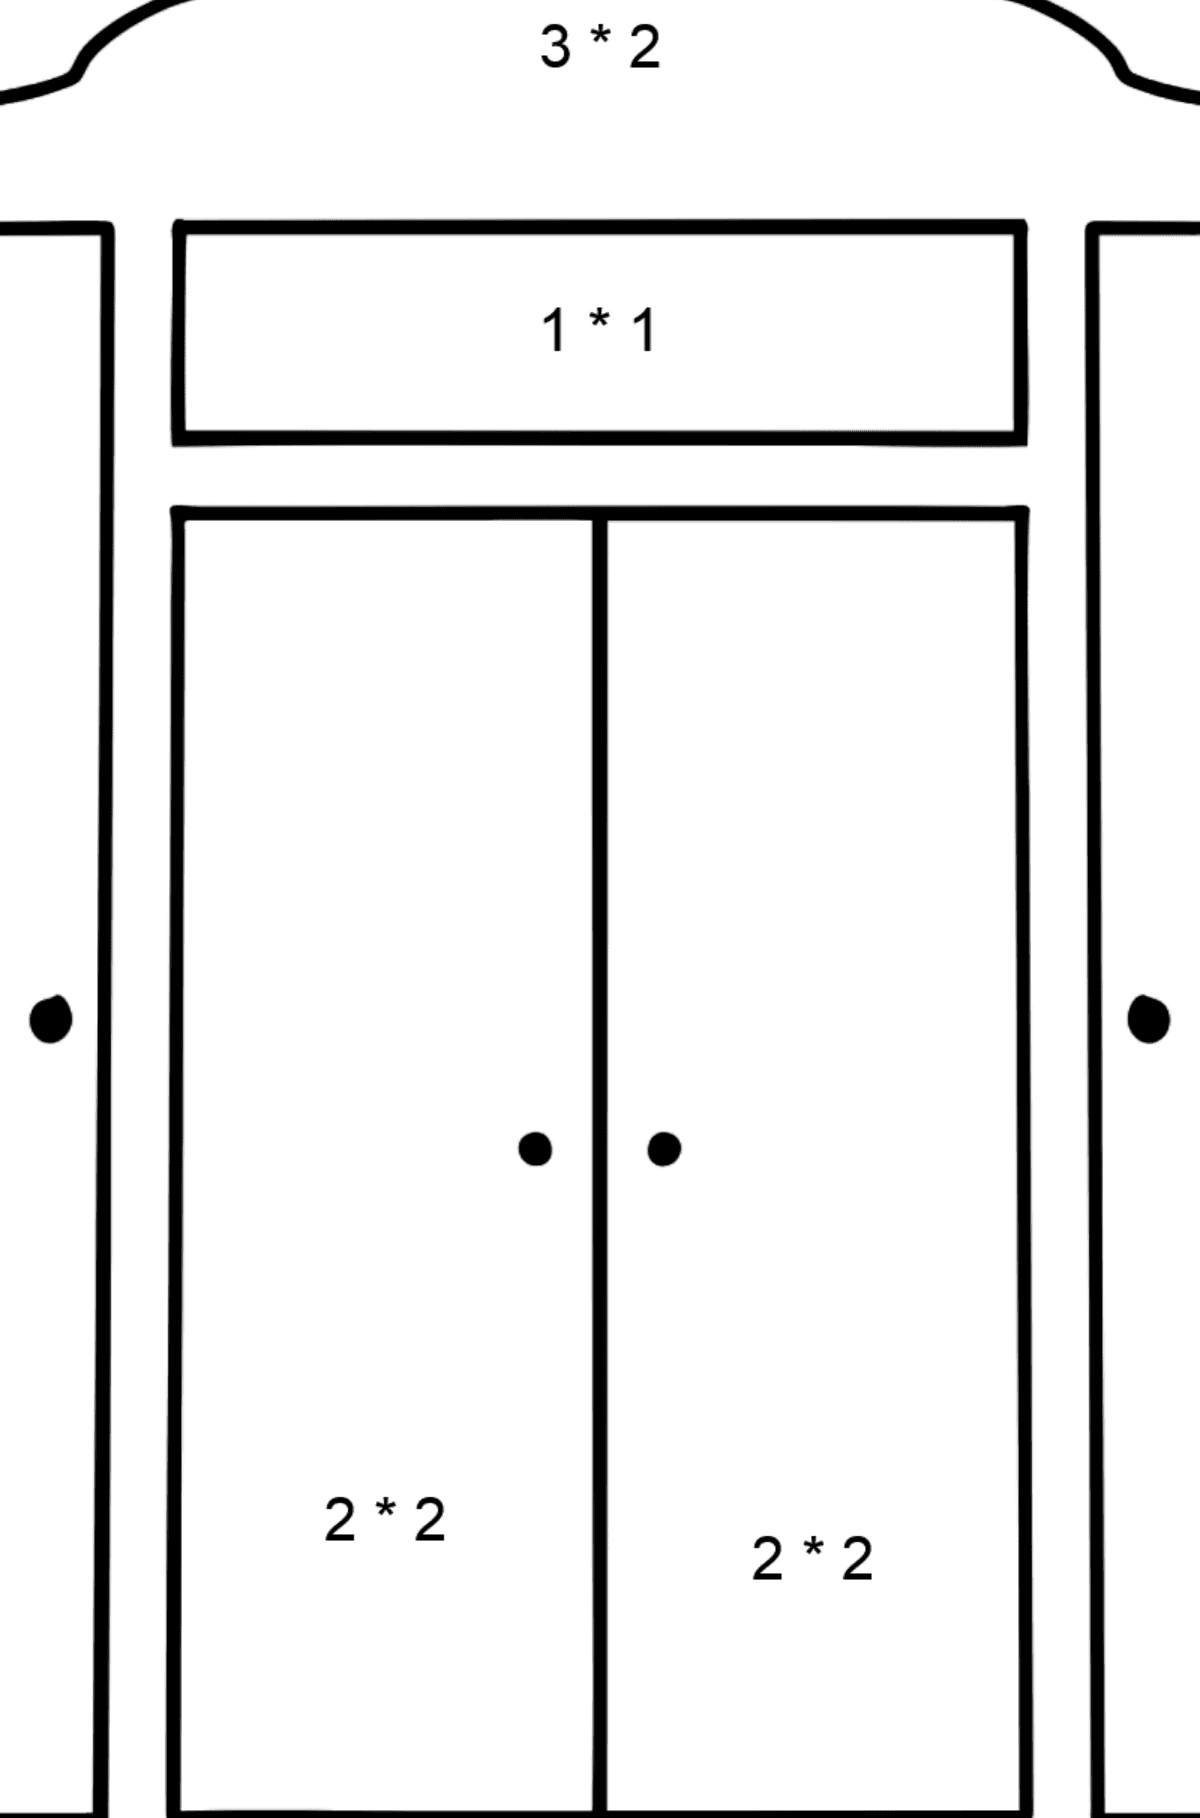 Wardrobe coloring page - Math Coloring - Multiplication for Kids